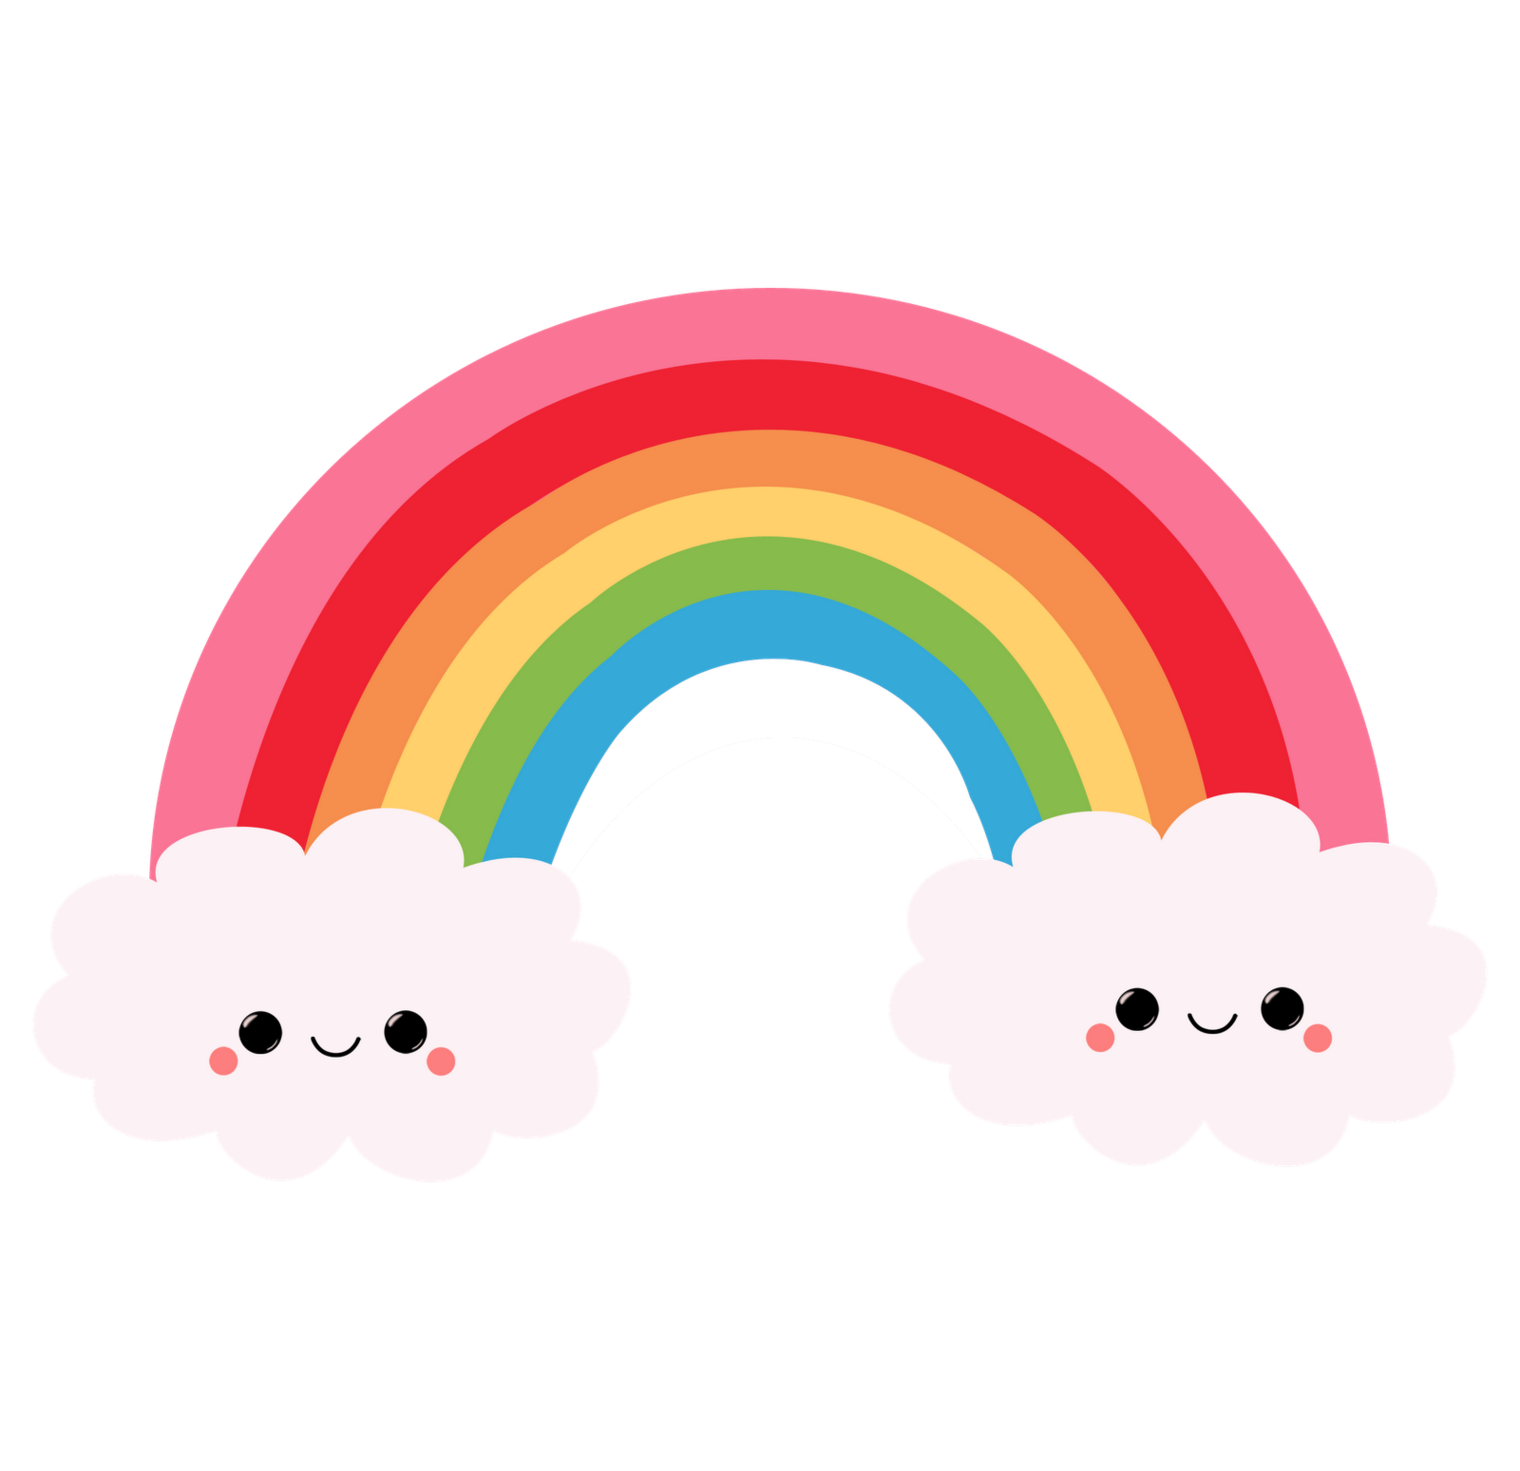 Coat clipart rainbow.  collection of tumblr